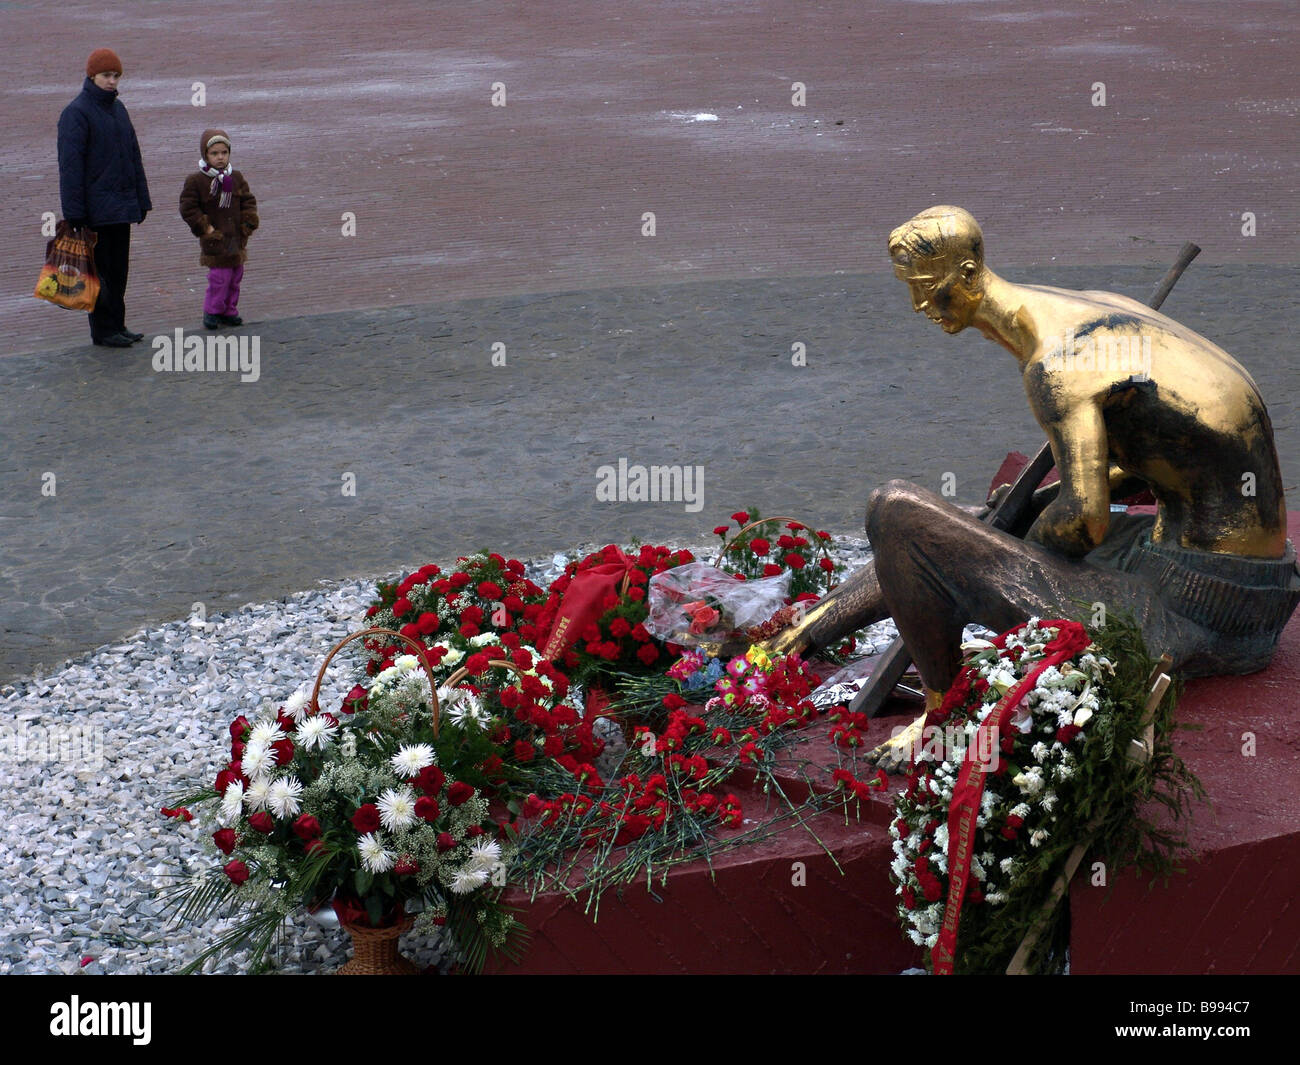 To the Soldier of the Fatherland monument that opened in Moscow - Stock Image